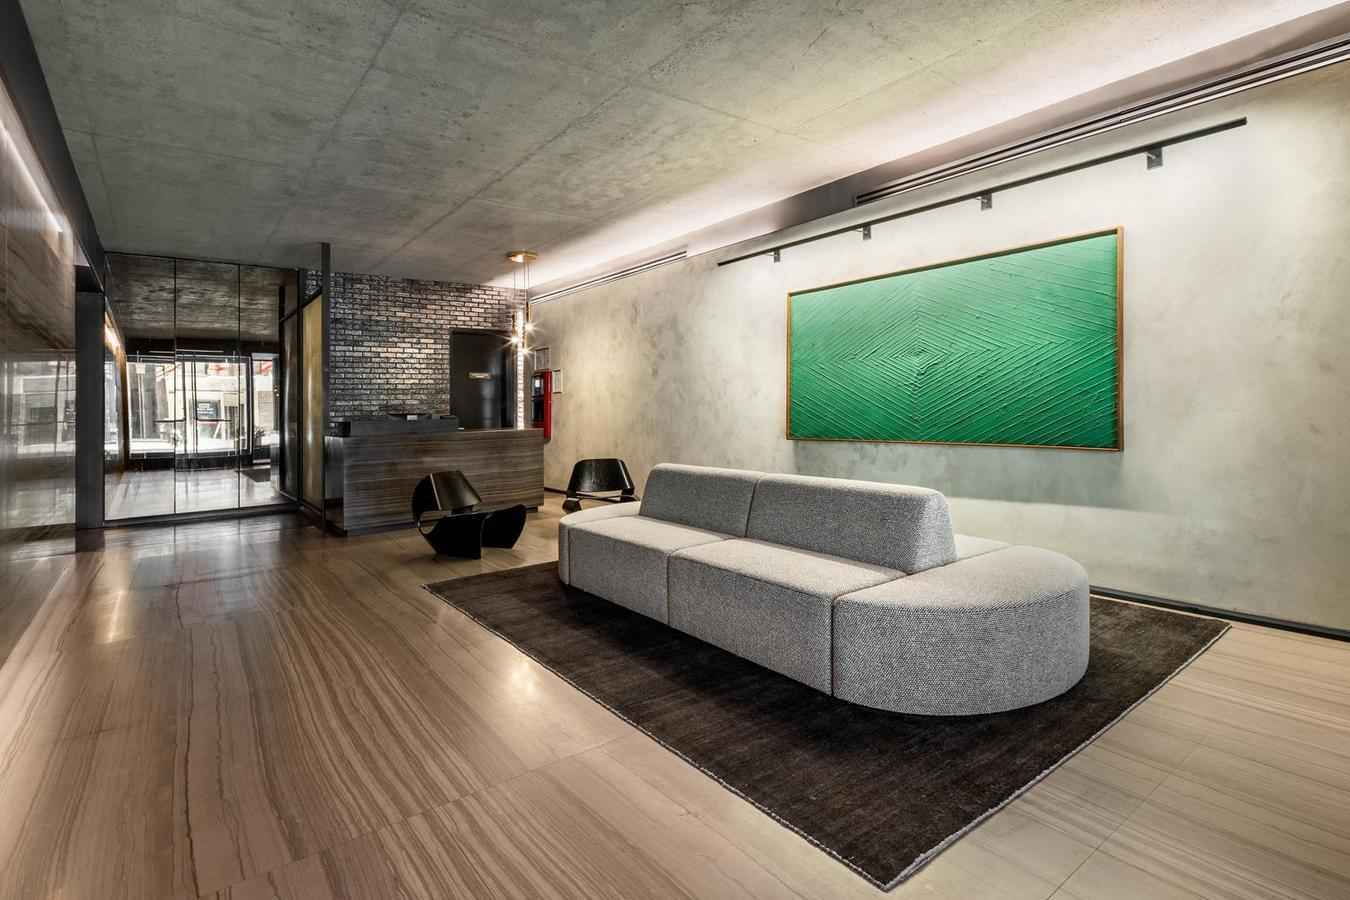 Apartment for sale at 196 Orchard Street, Apt PH-G